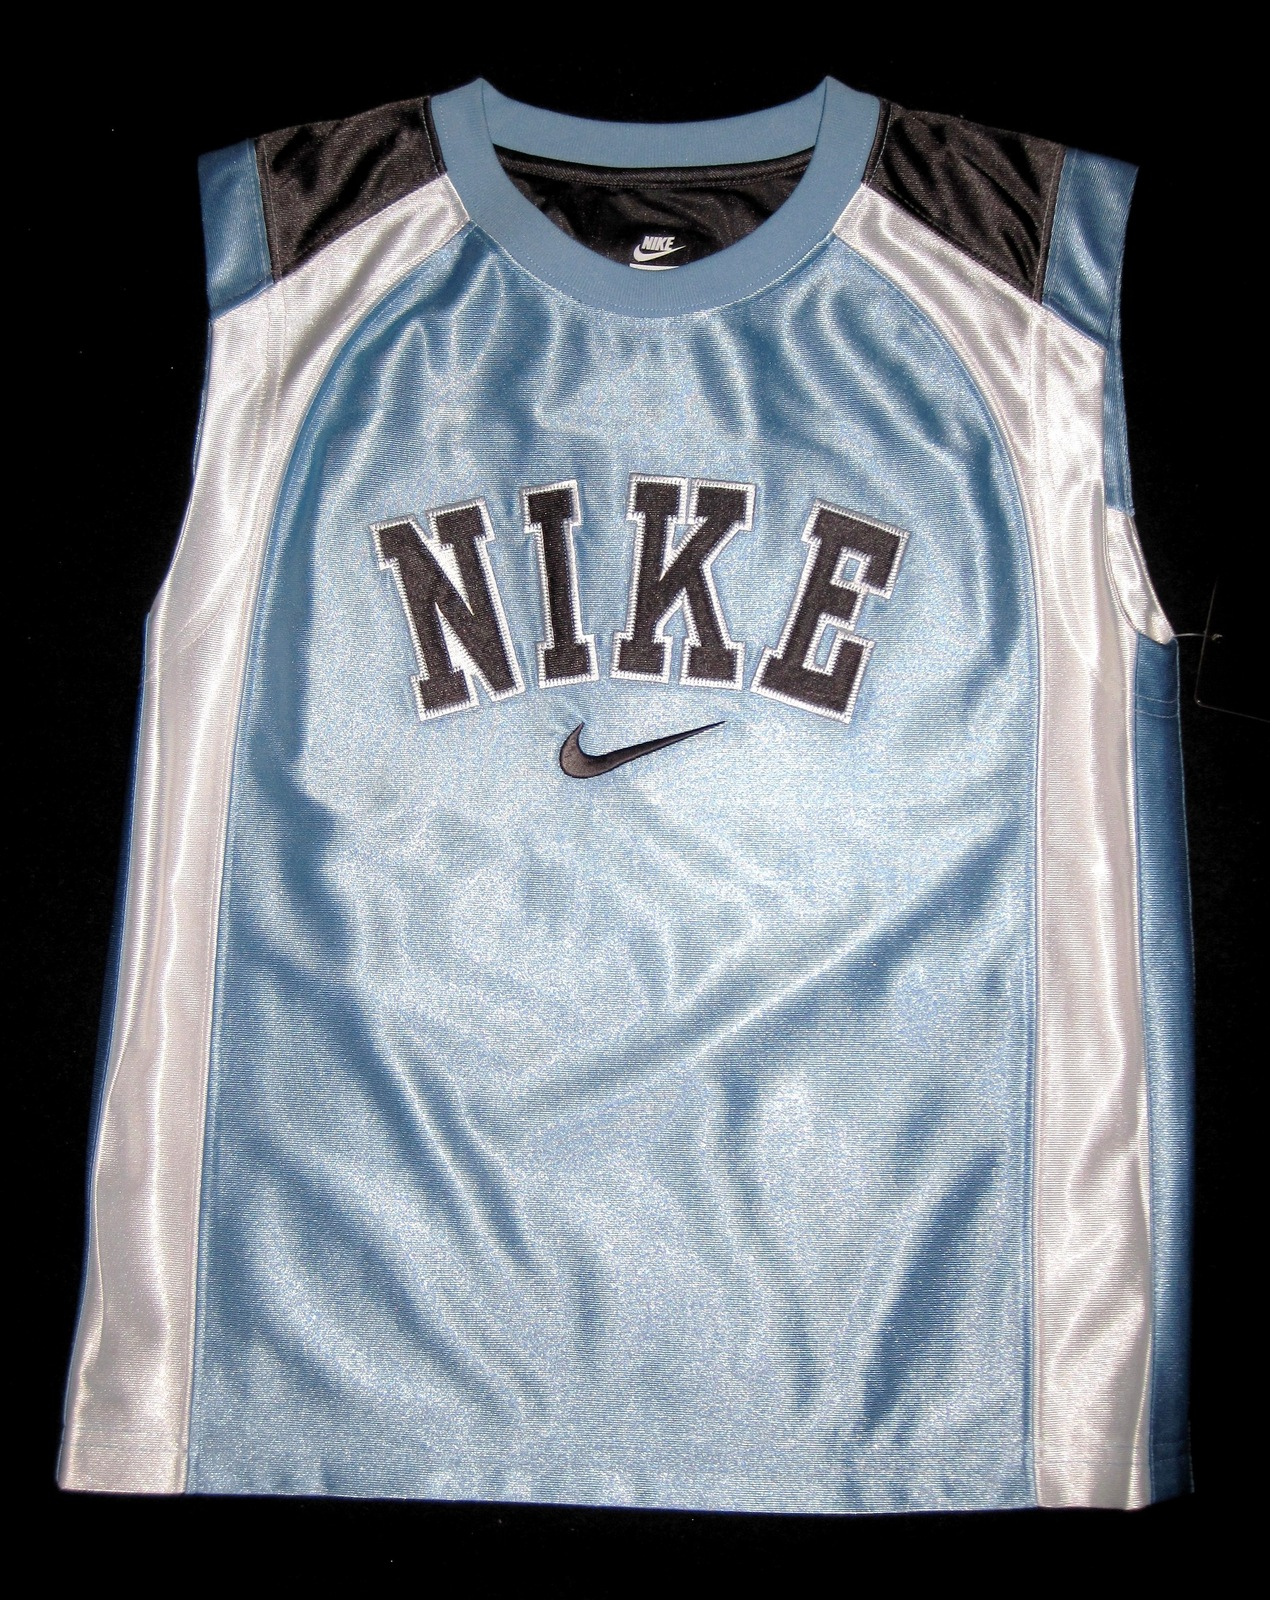 BOYS 7 - Nike - Light Blue-Gray-White BASKETBALL SPORTS JERSEY